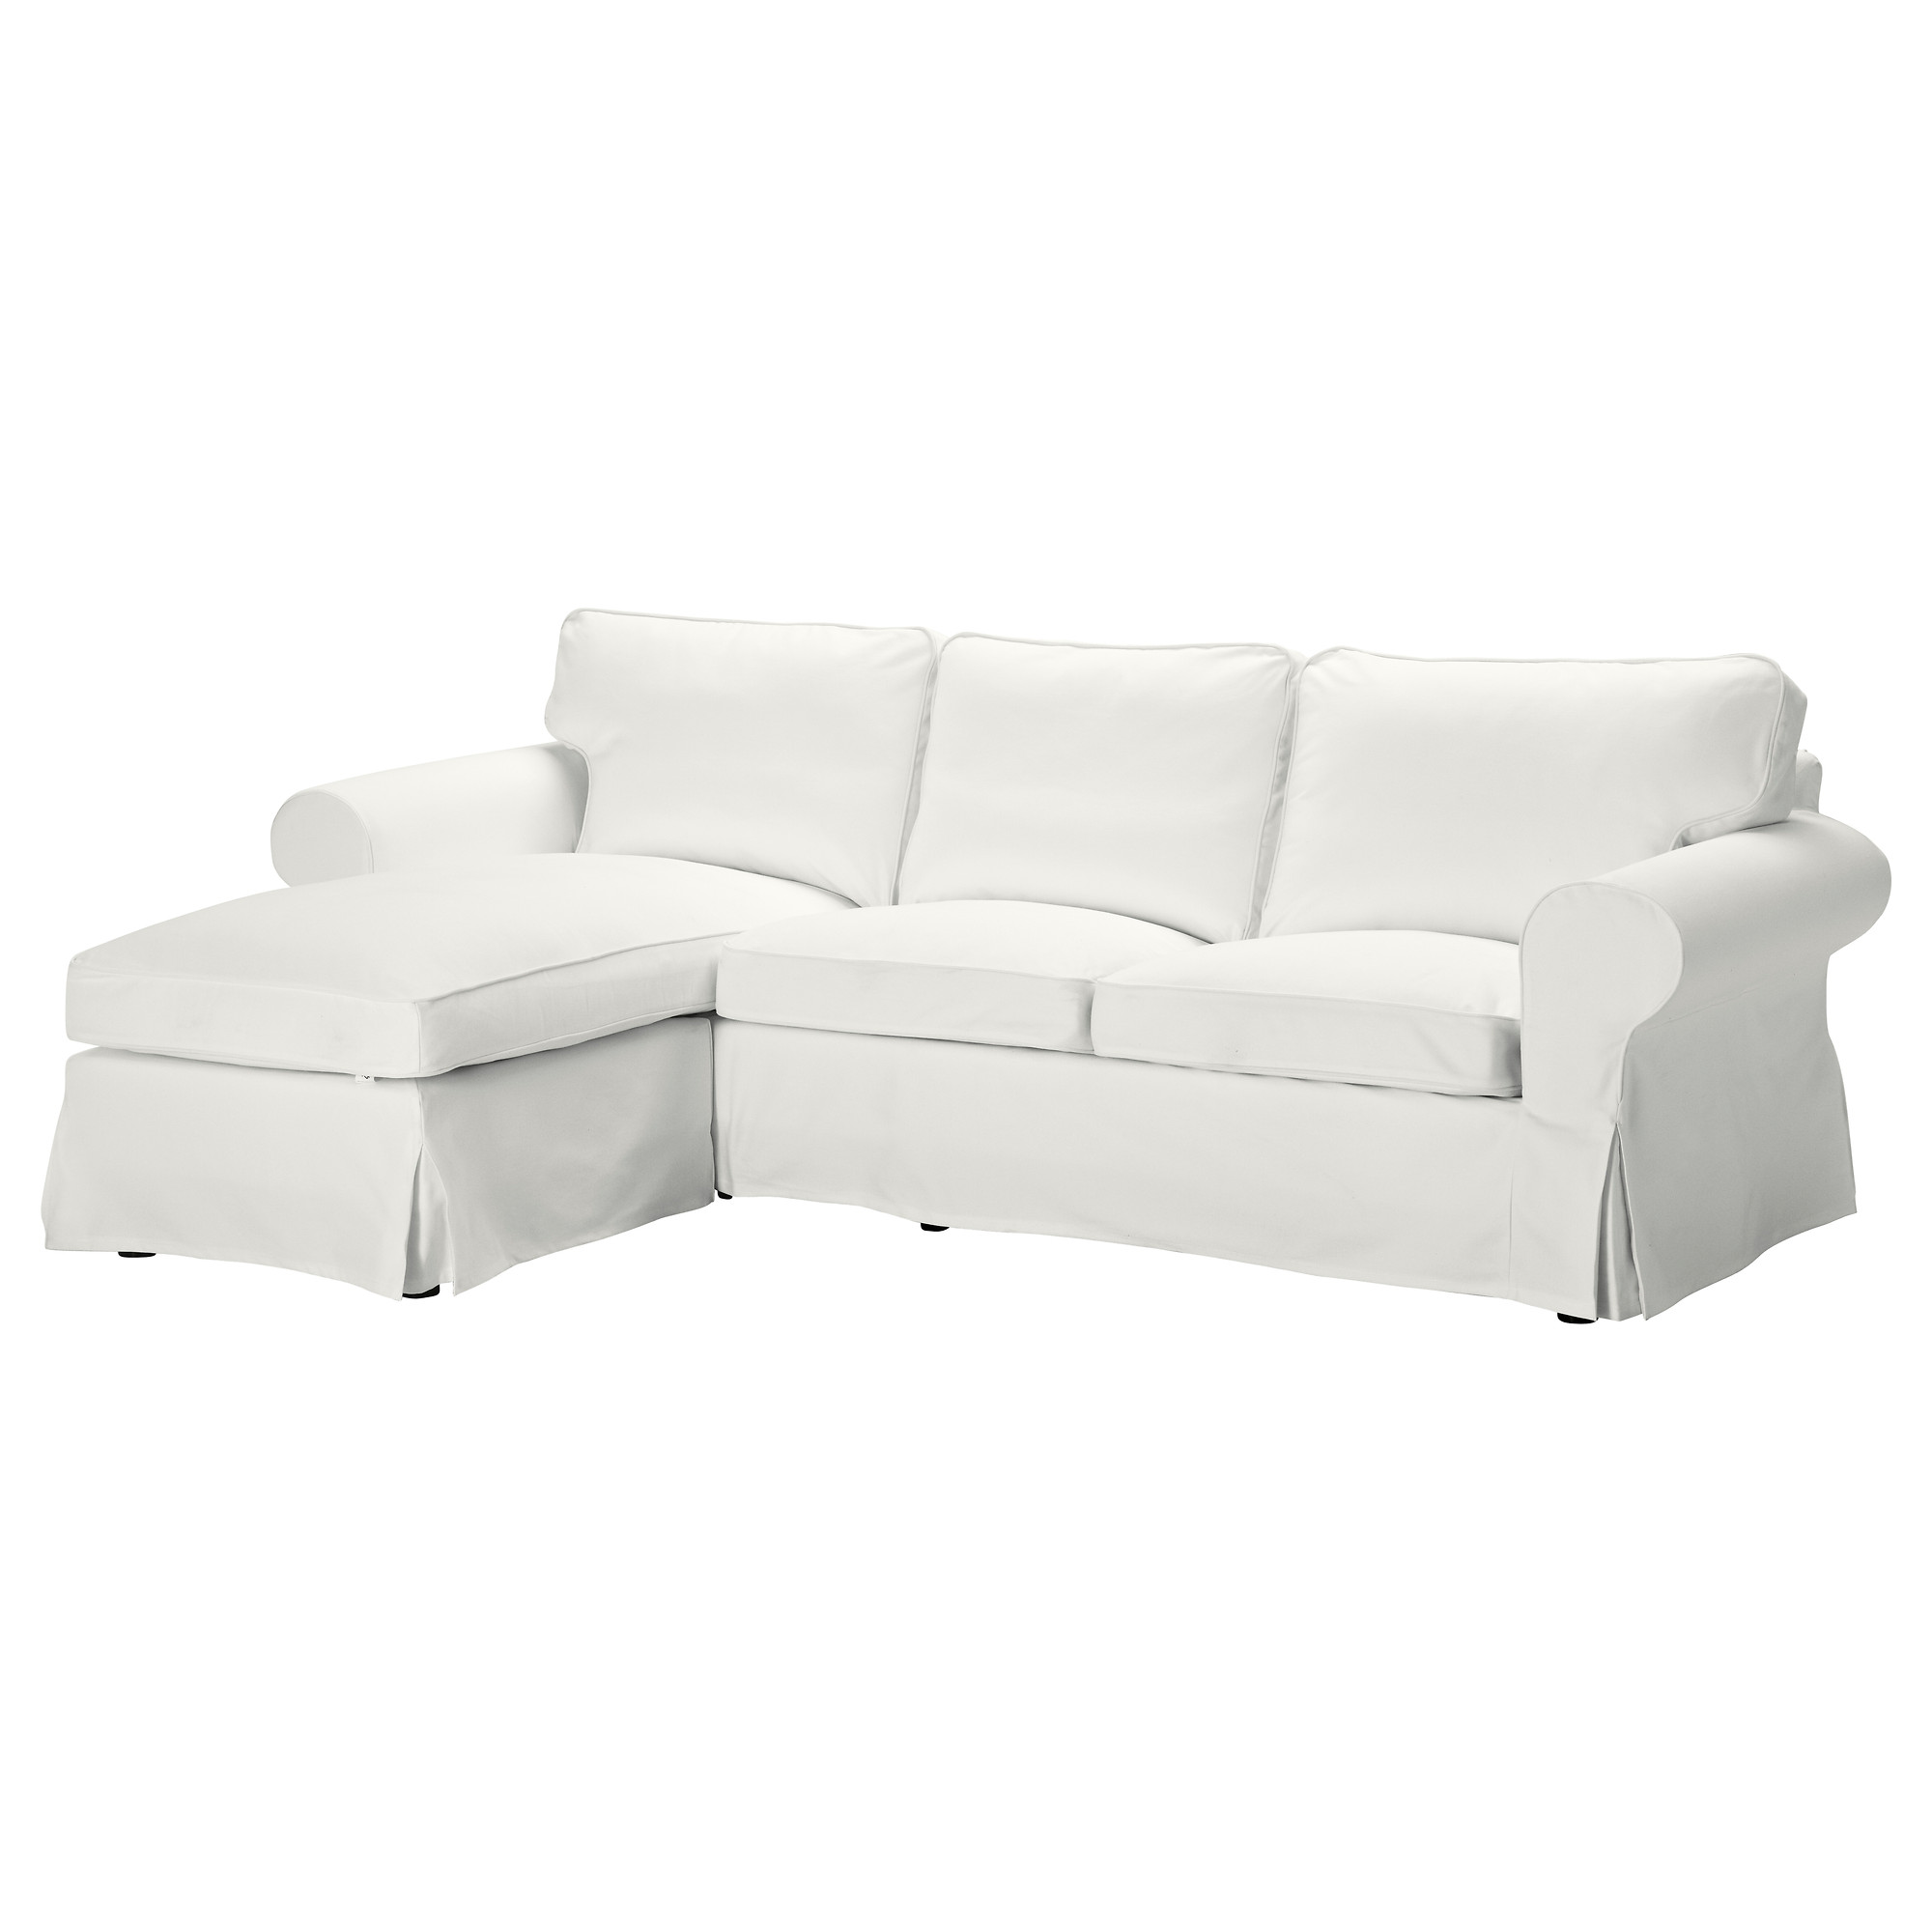 Great EKTORP Two Seat Sofa And Chaise Longue   Blekinge White   IKEA